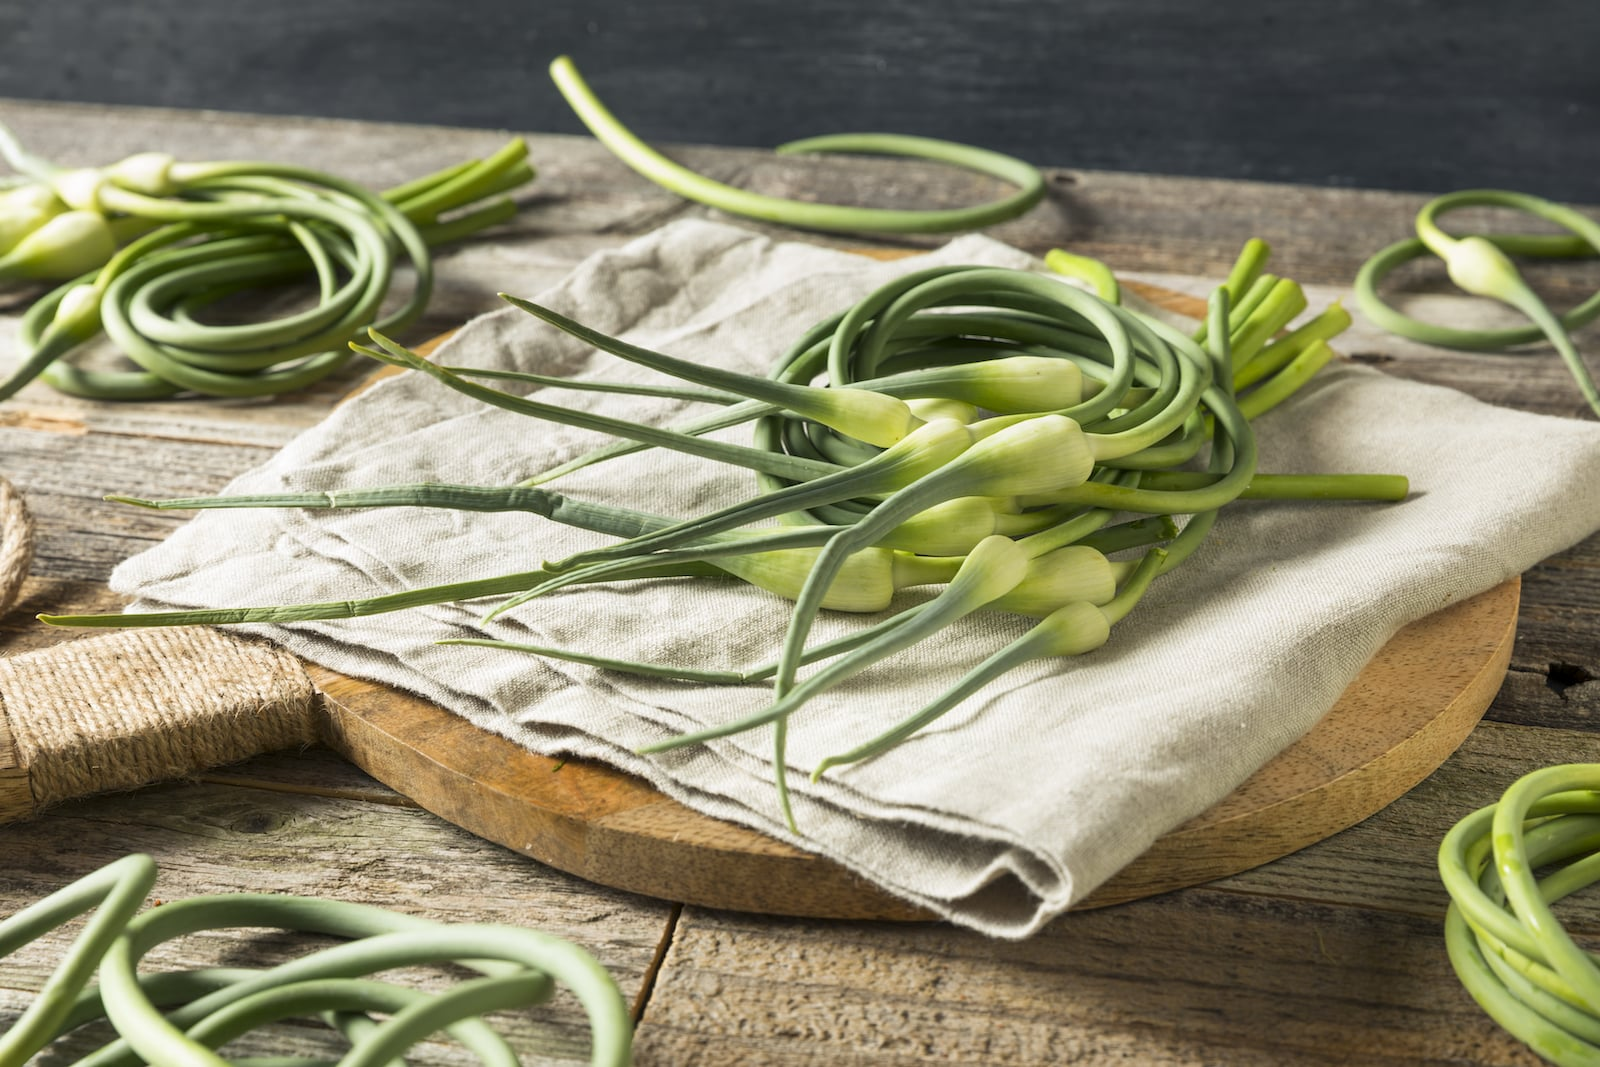 What's A Good Garlic Scapes Substitute?